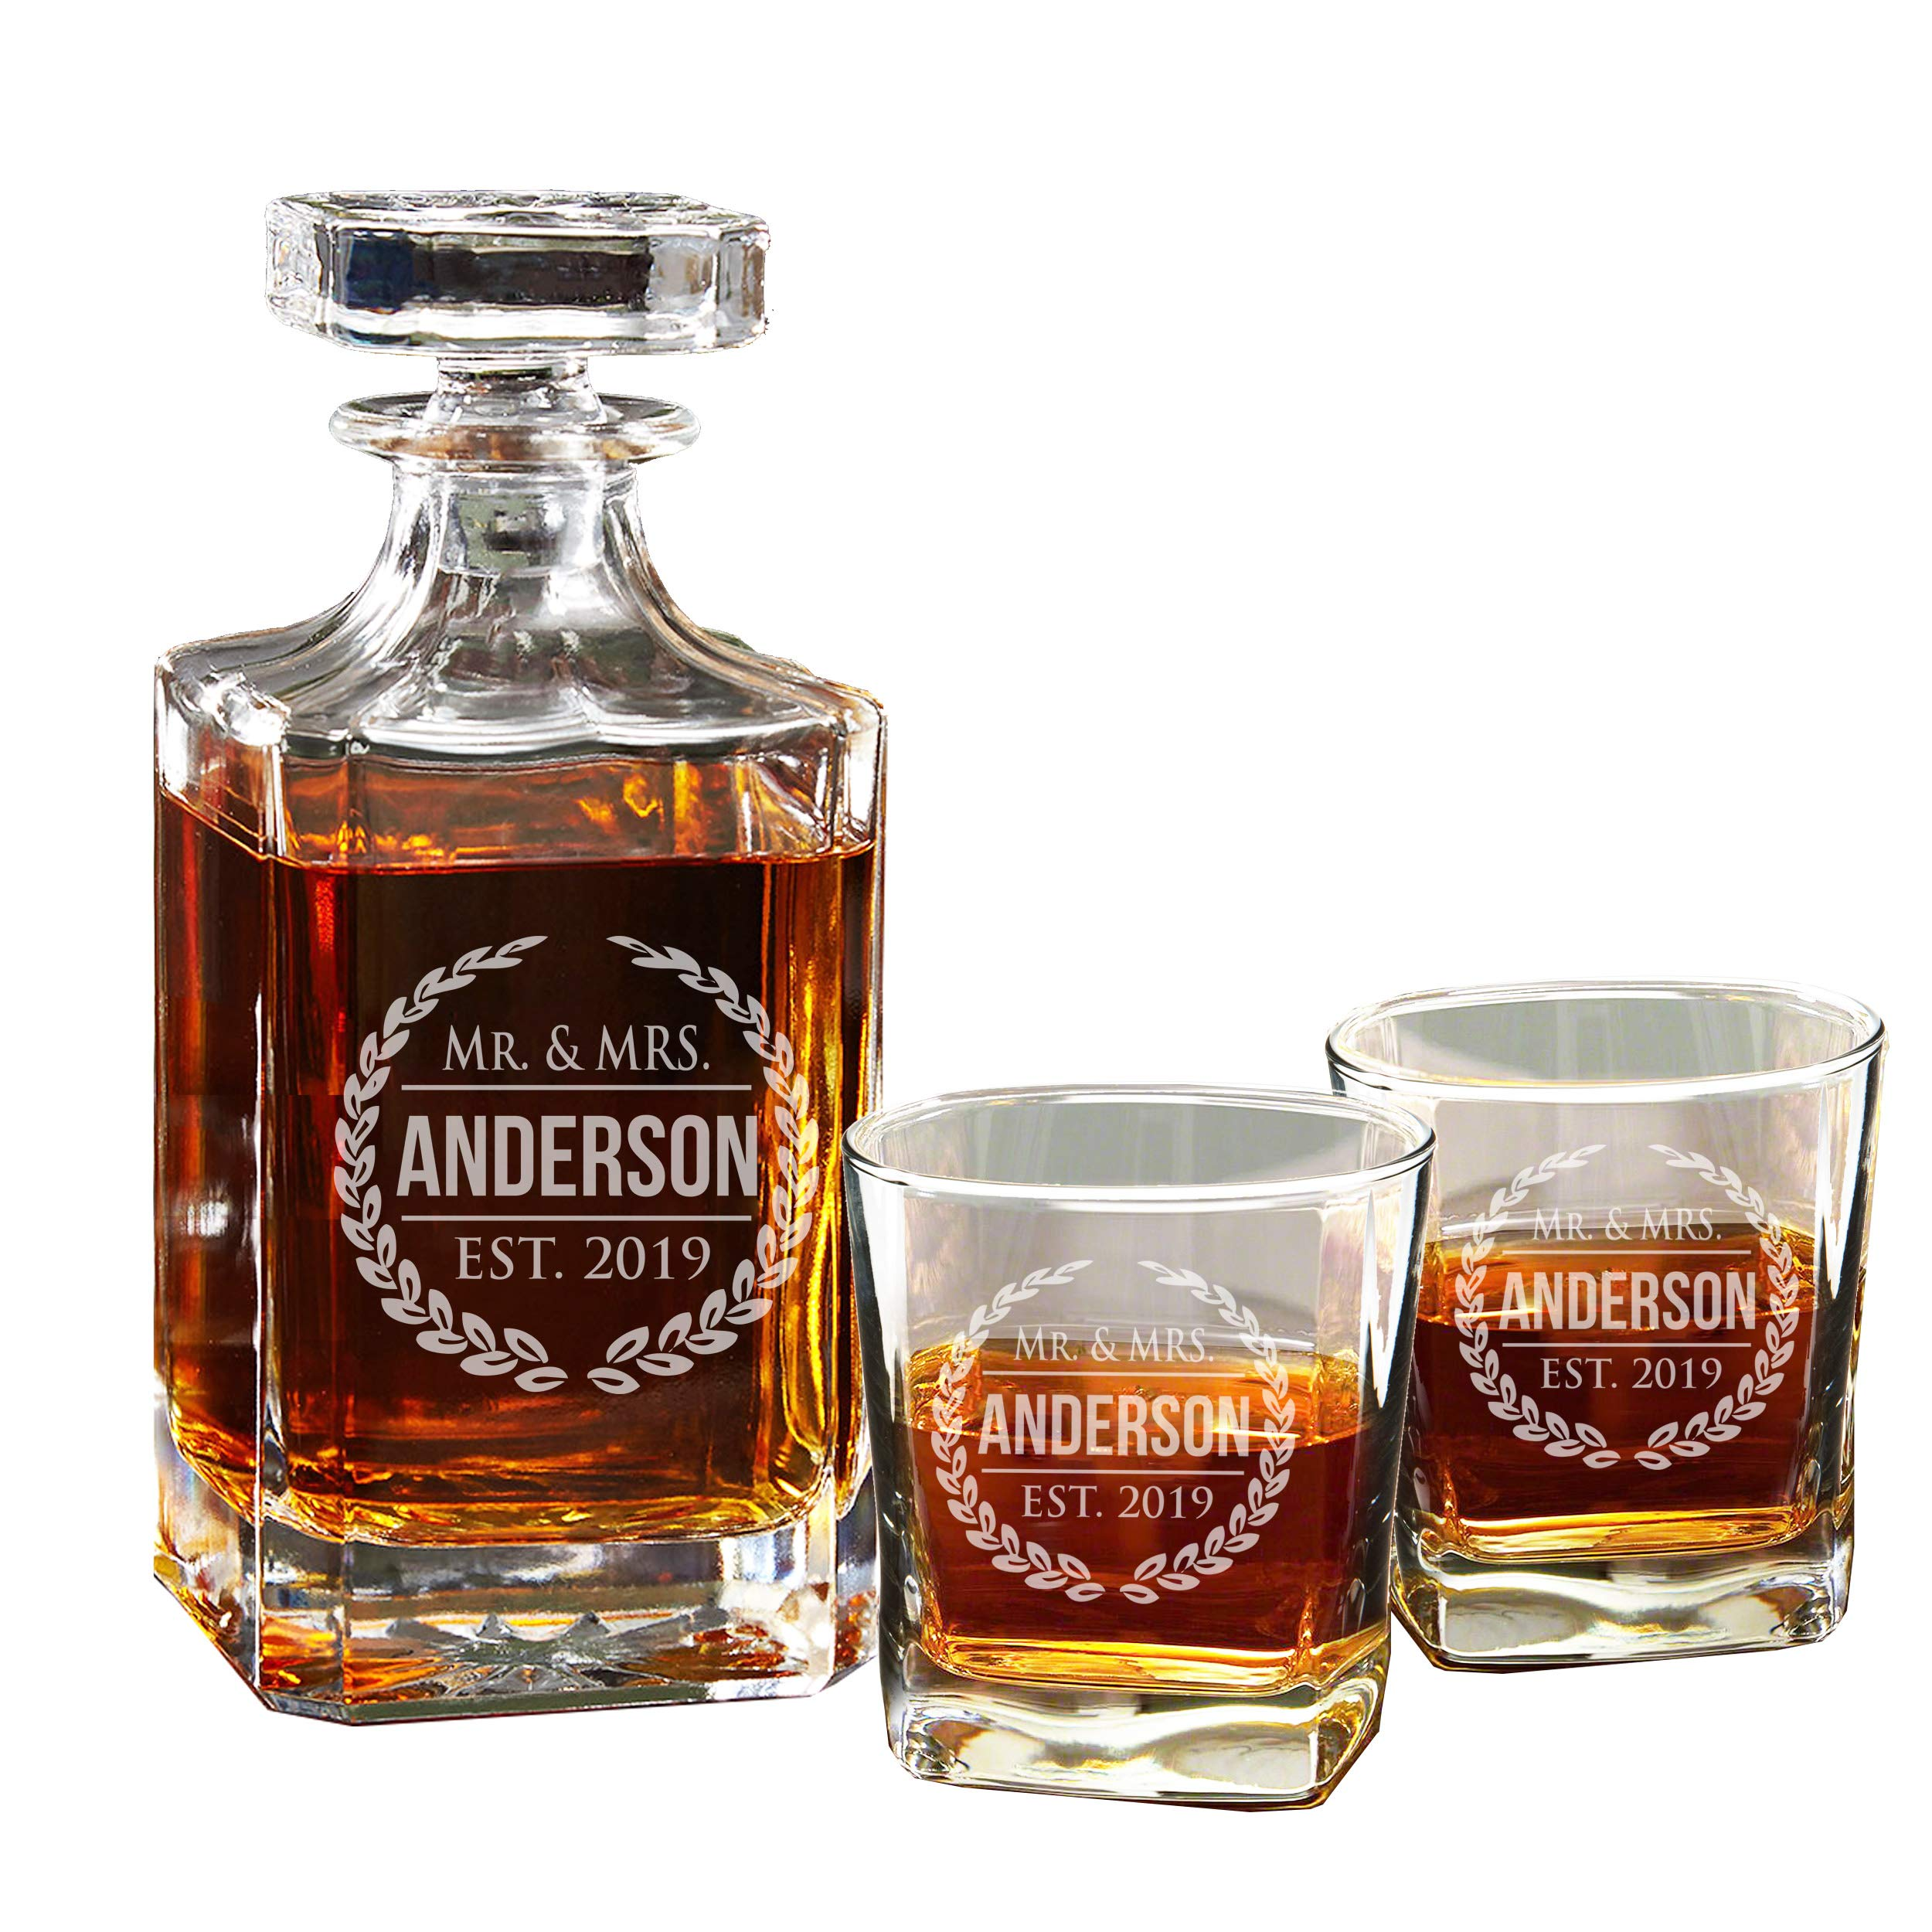 Custom Personalized Couples Whiskey Decanter Set - Monogrammed Gifts for Newlyweds, Anniversary, Wedding, or Engagement (Decanter and 2 Glasses)